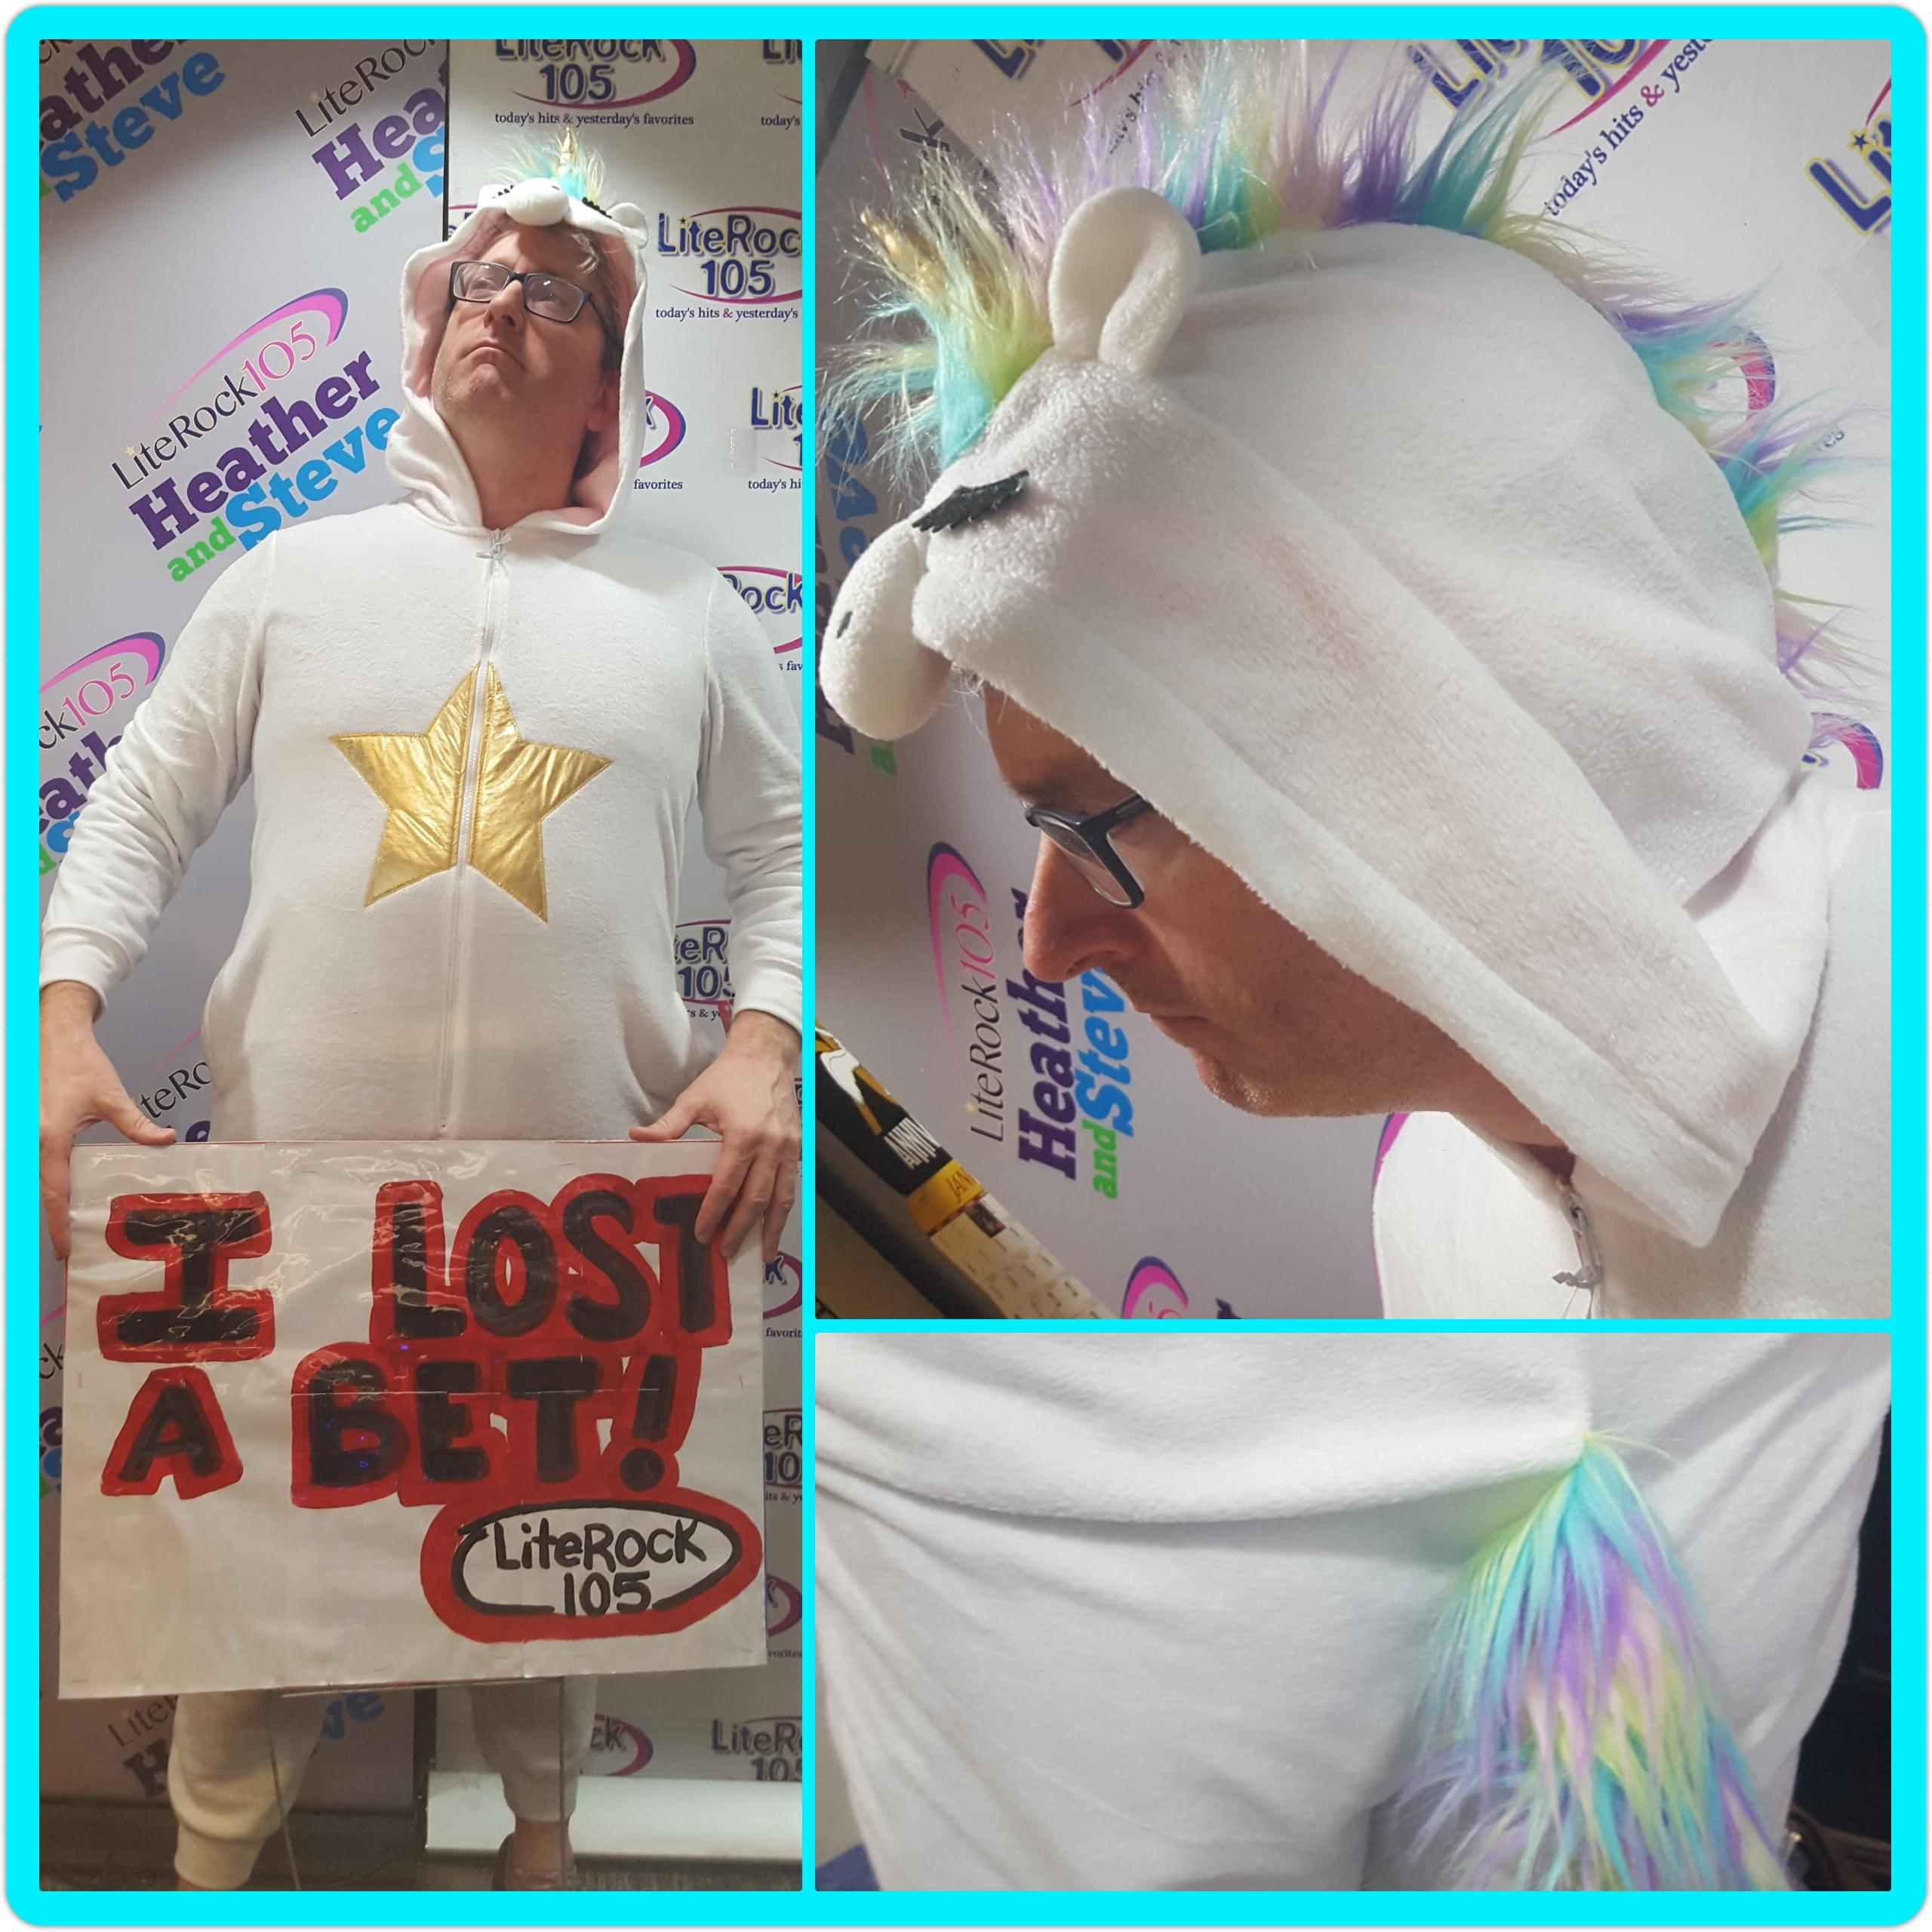 LOOK OUT! It's Steve, the Unicorn!